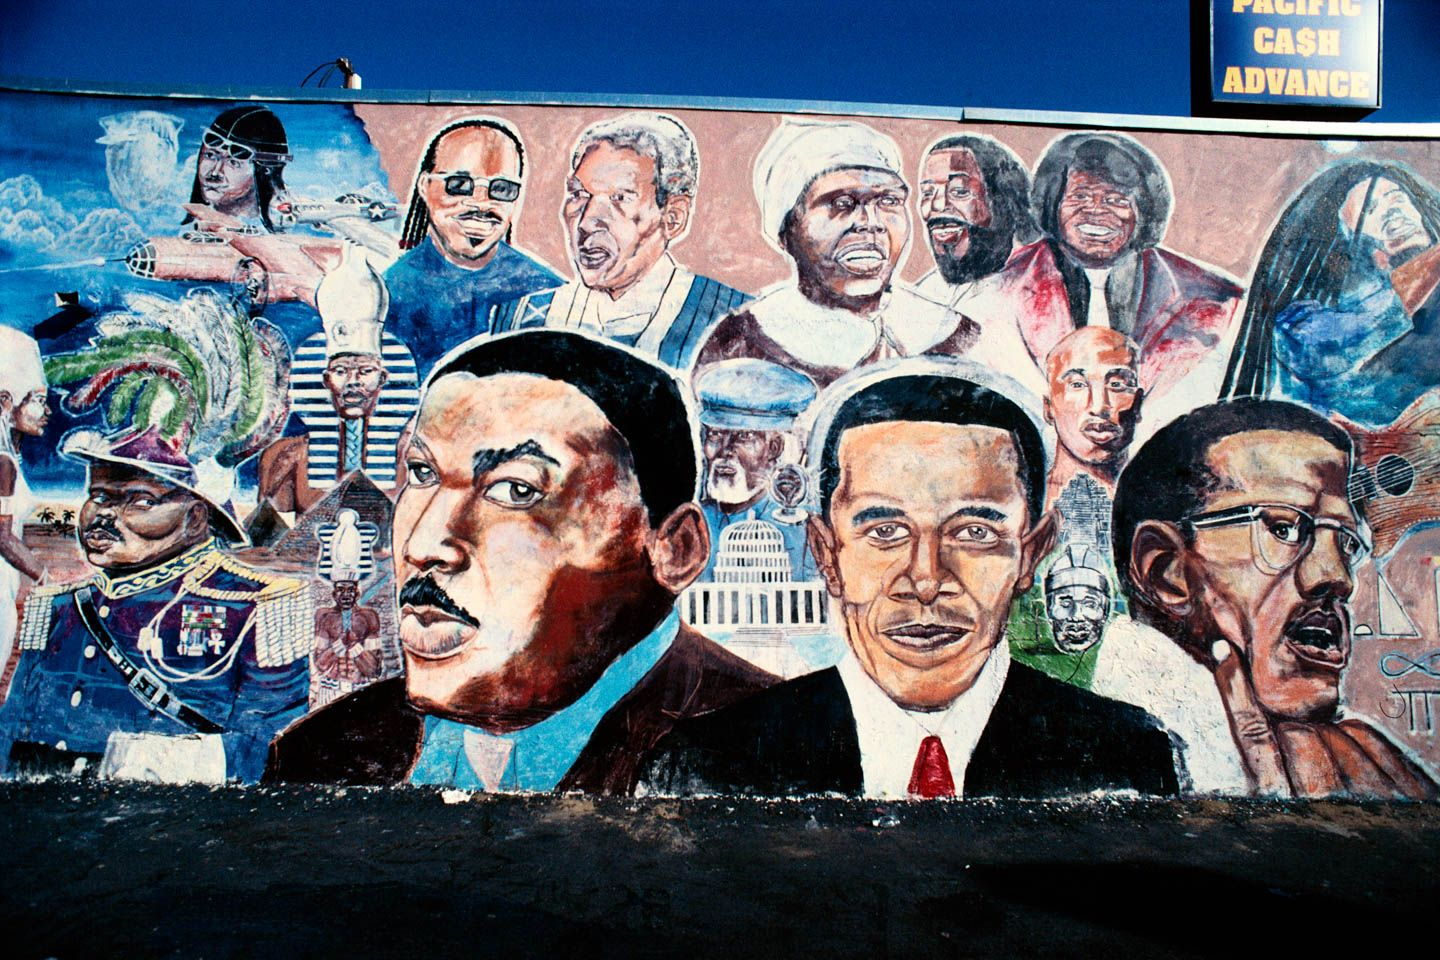 MLK Jr., Obama and Malcolm X mural by Shyaan Khufu, Master Burger, 4423 S. Western Ave., L. A. 2010